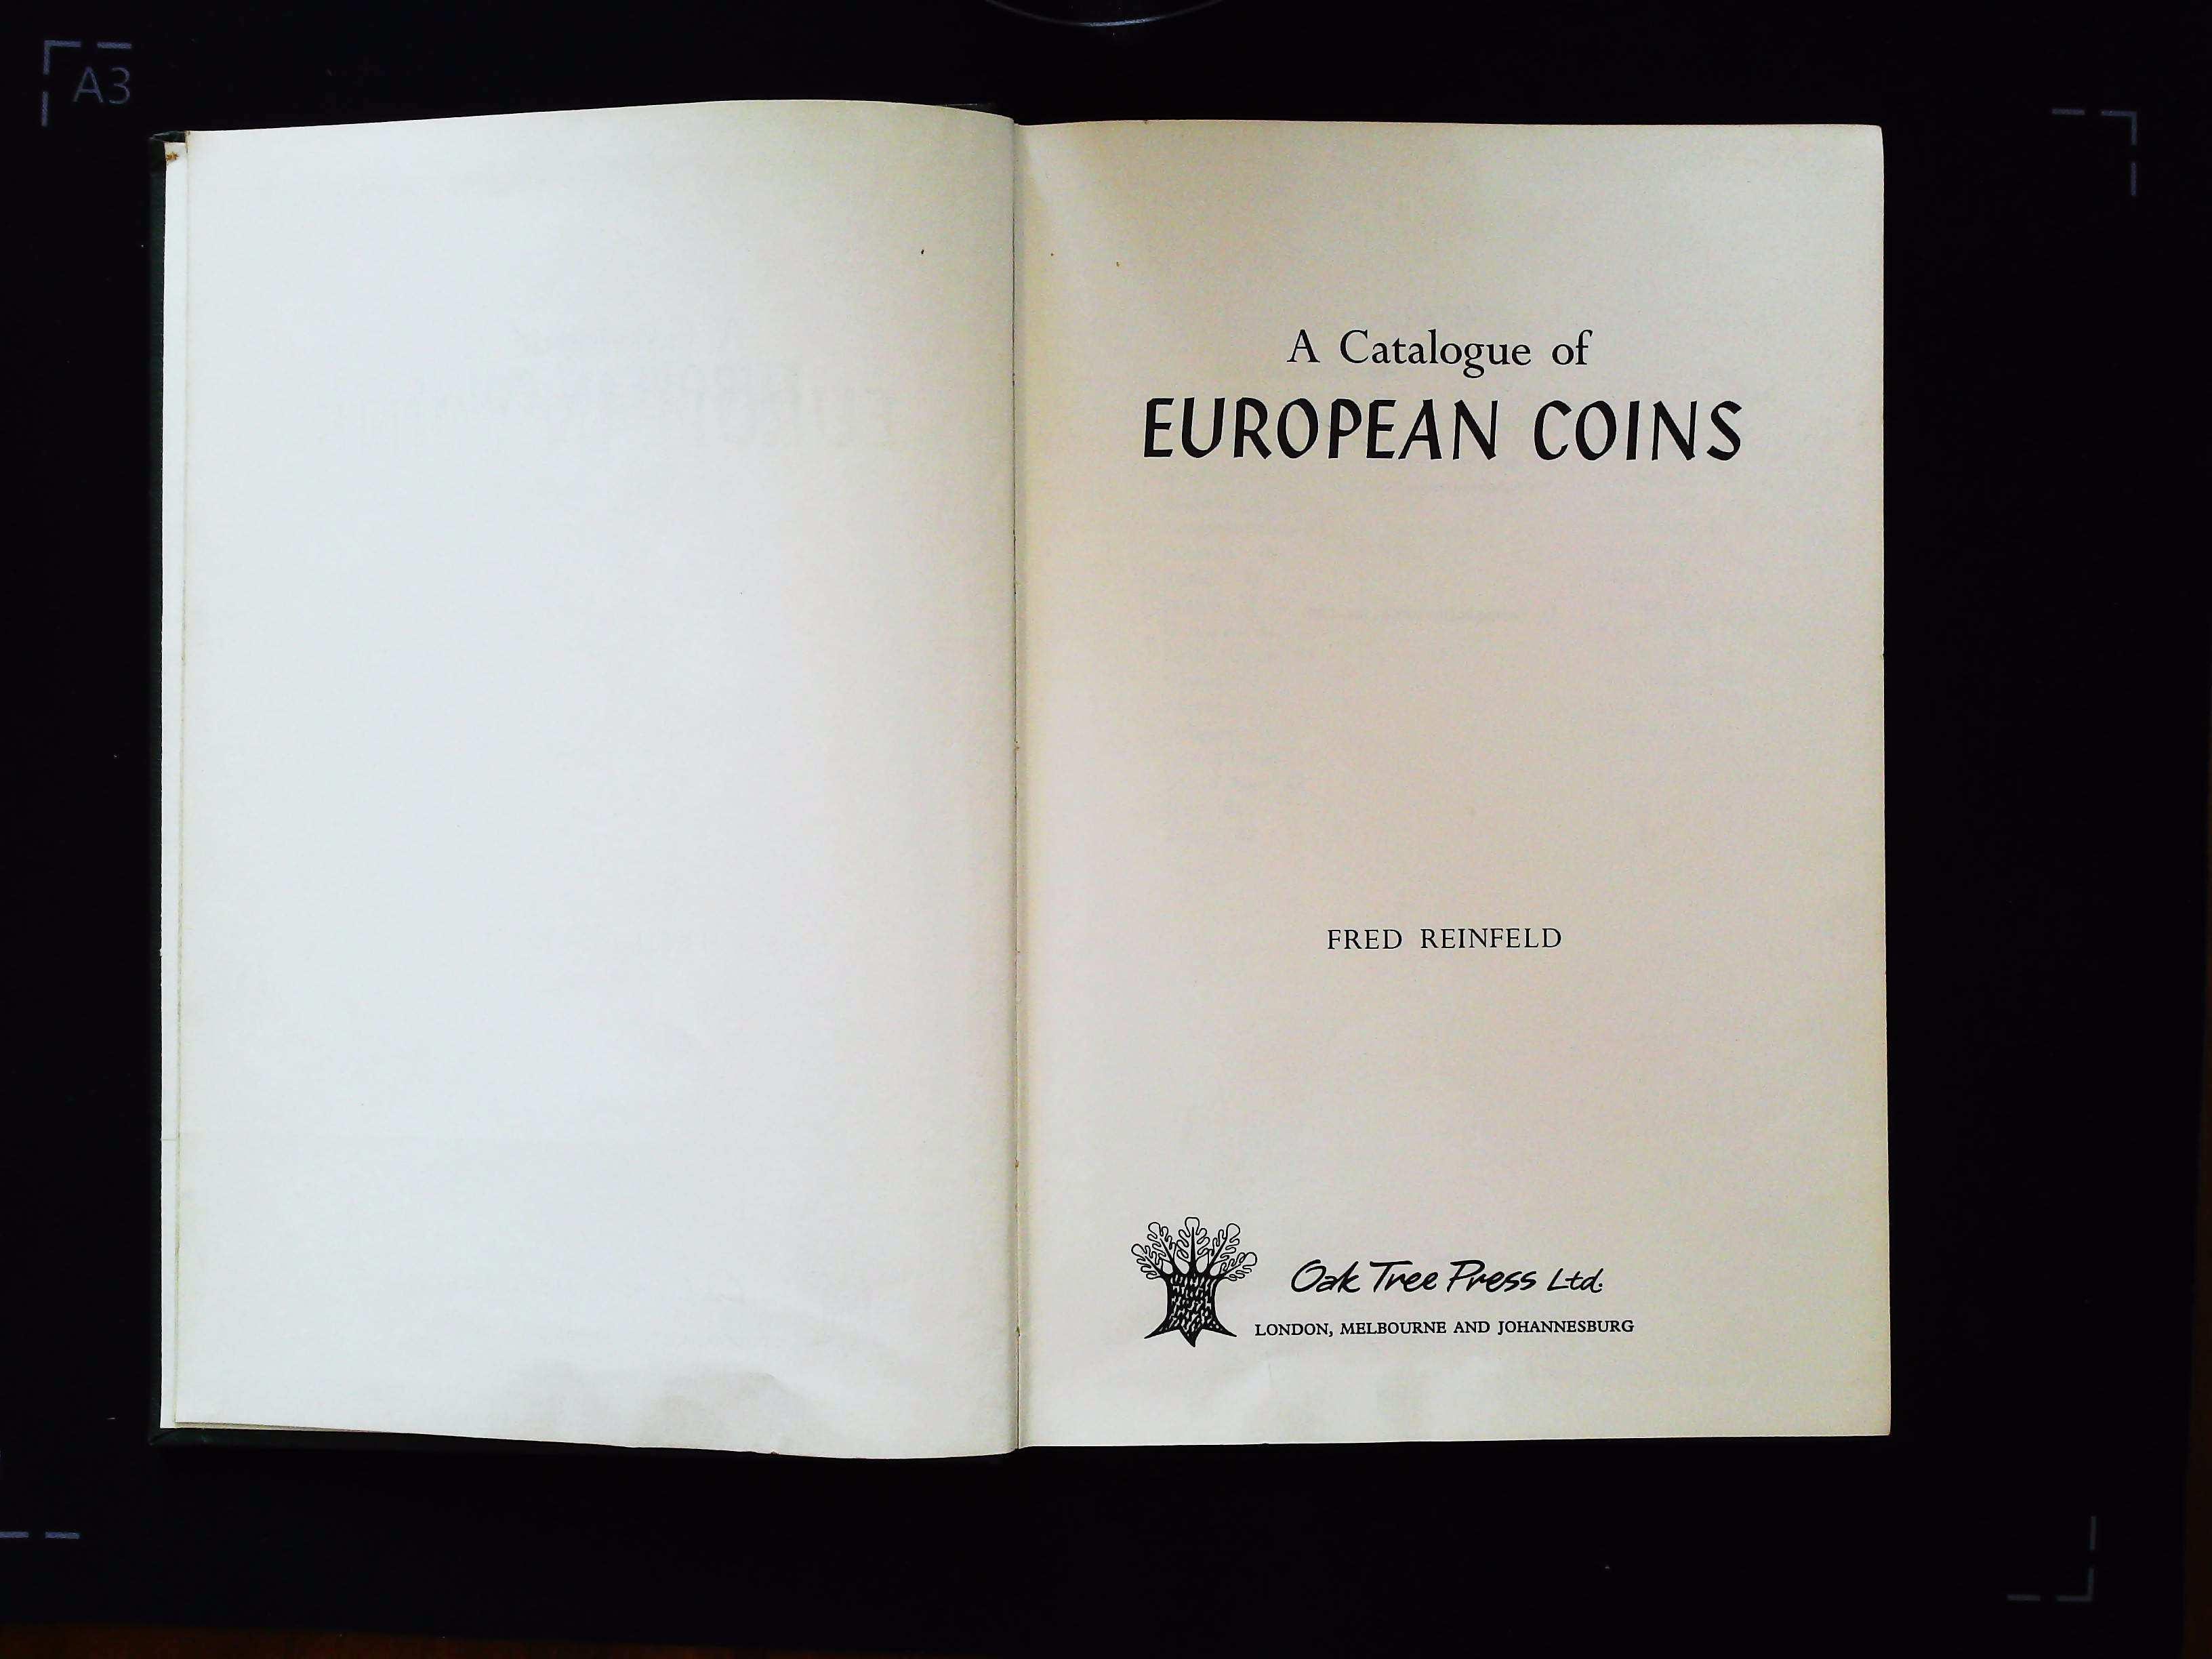 A Catalogue of European Coins by Fred Reinfeld hardback book 124 pages Published 1961 Oak Tree Press - Image 3 of 4